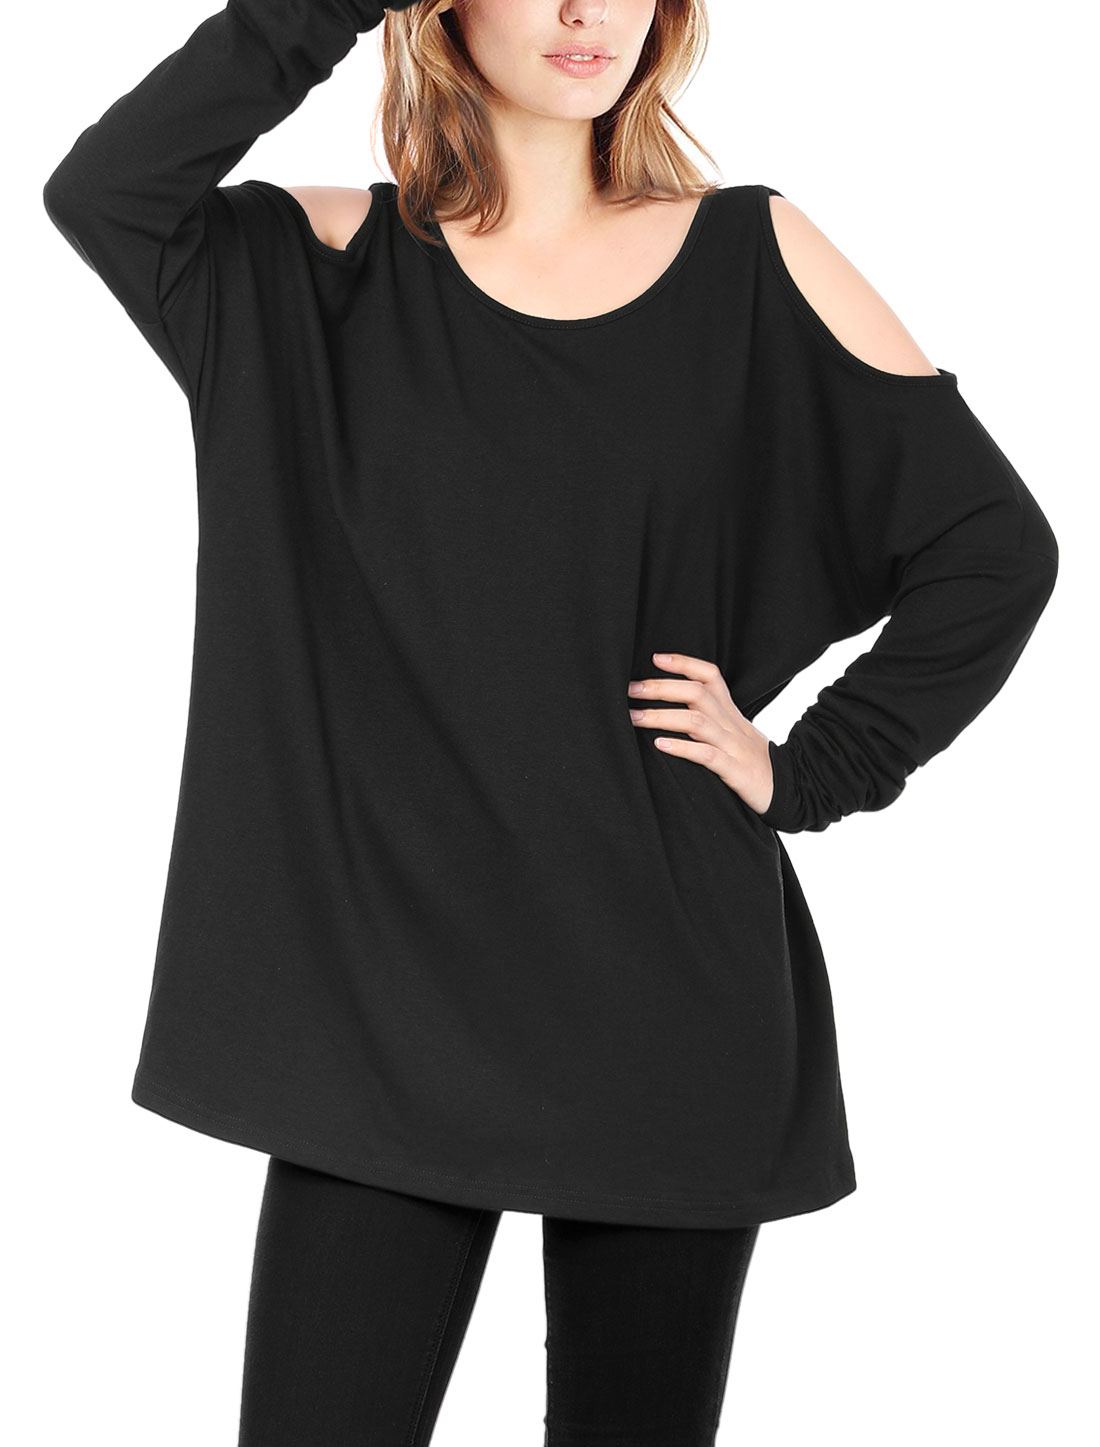 Women Scoop Neck Cut Out Shoulder Oversized Tunic Top Black S